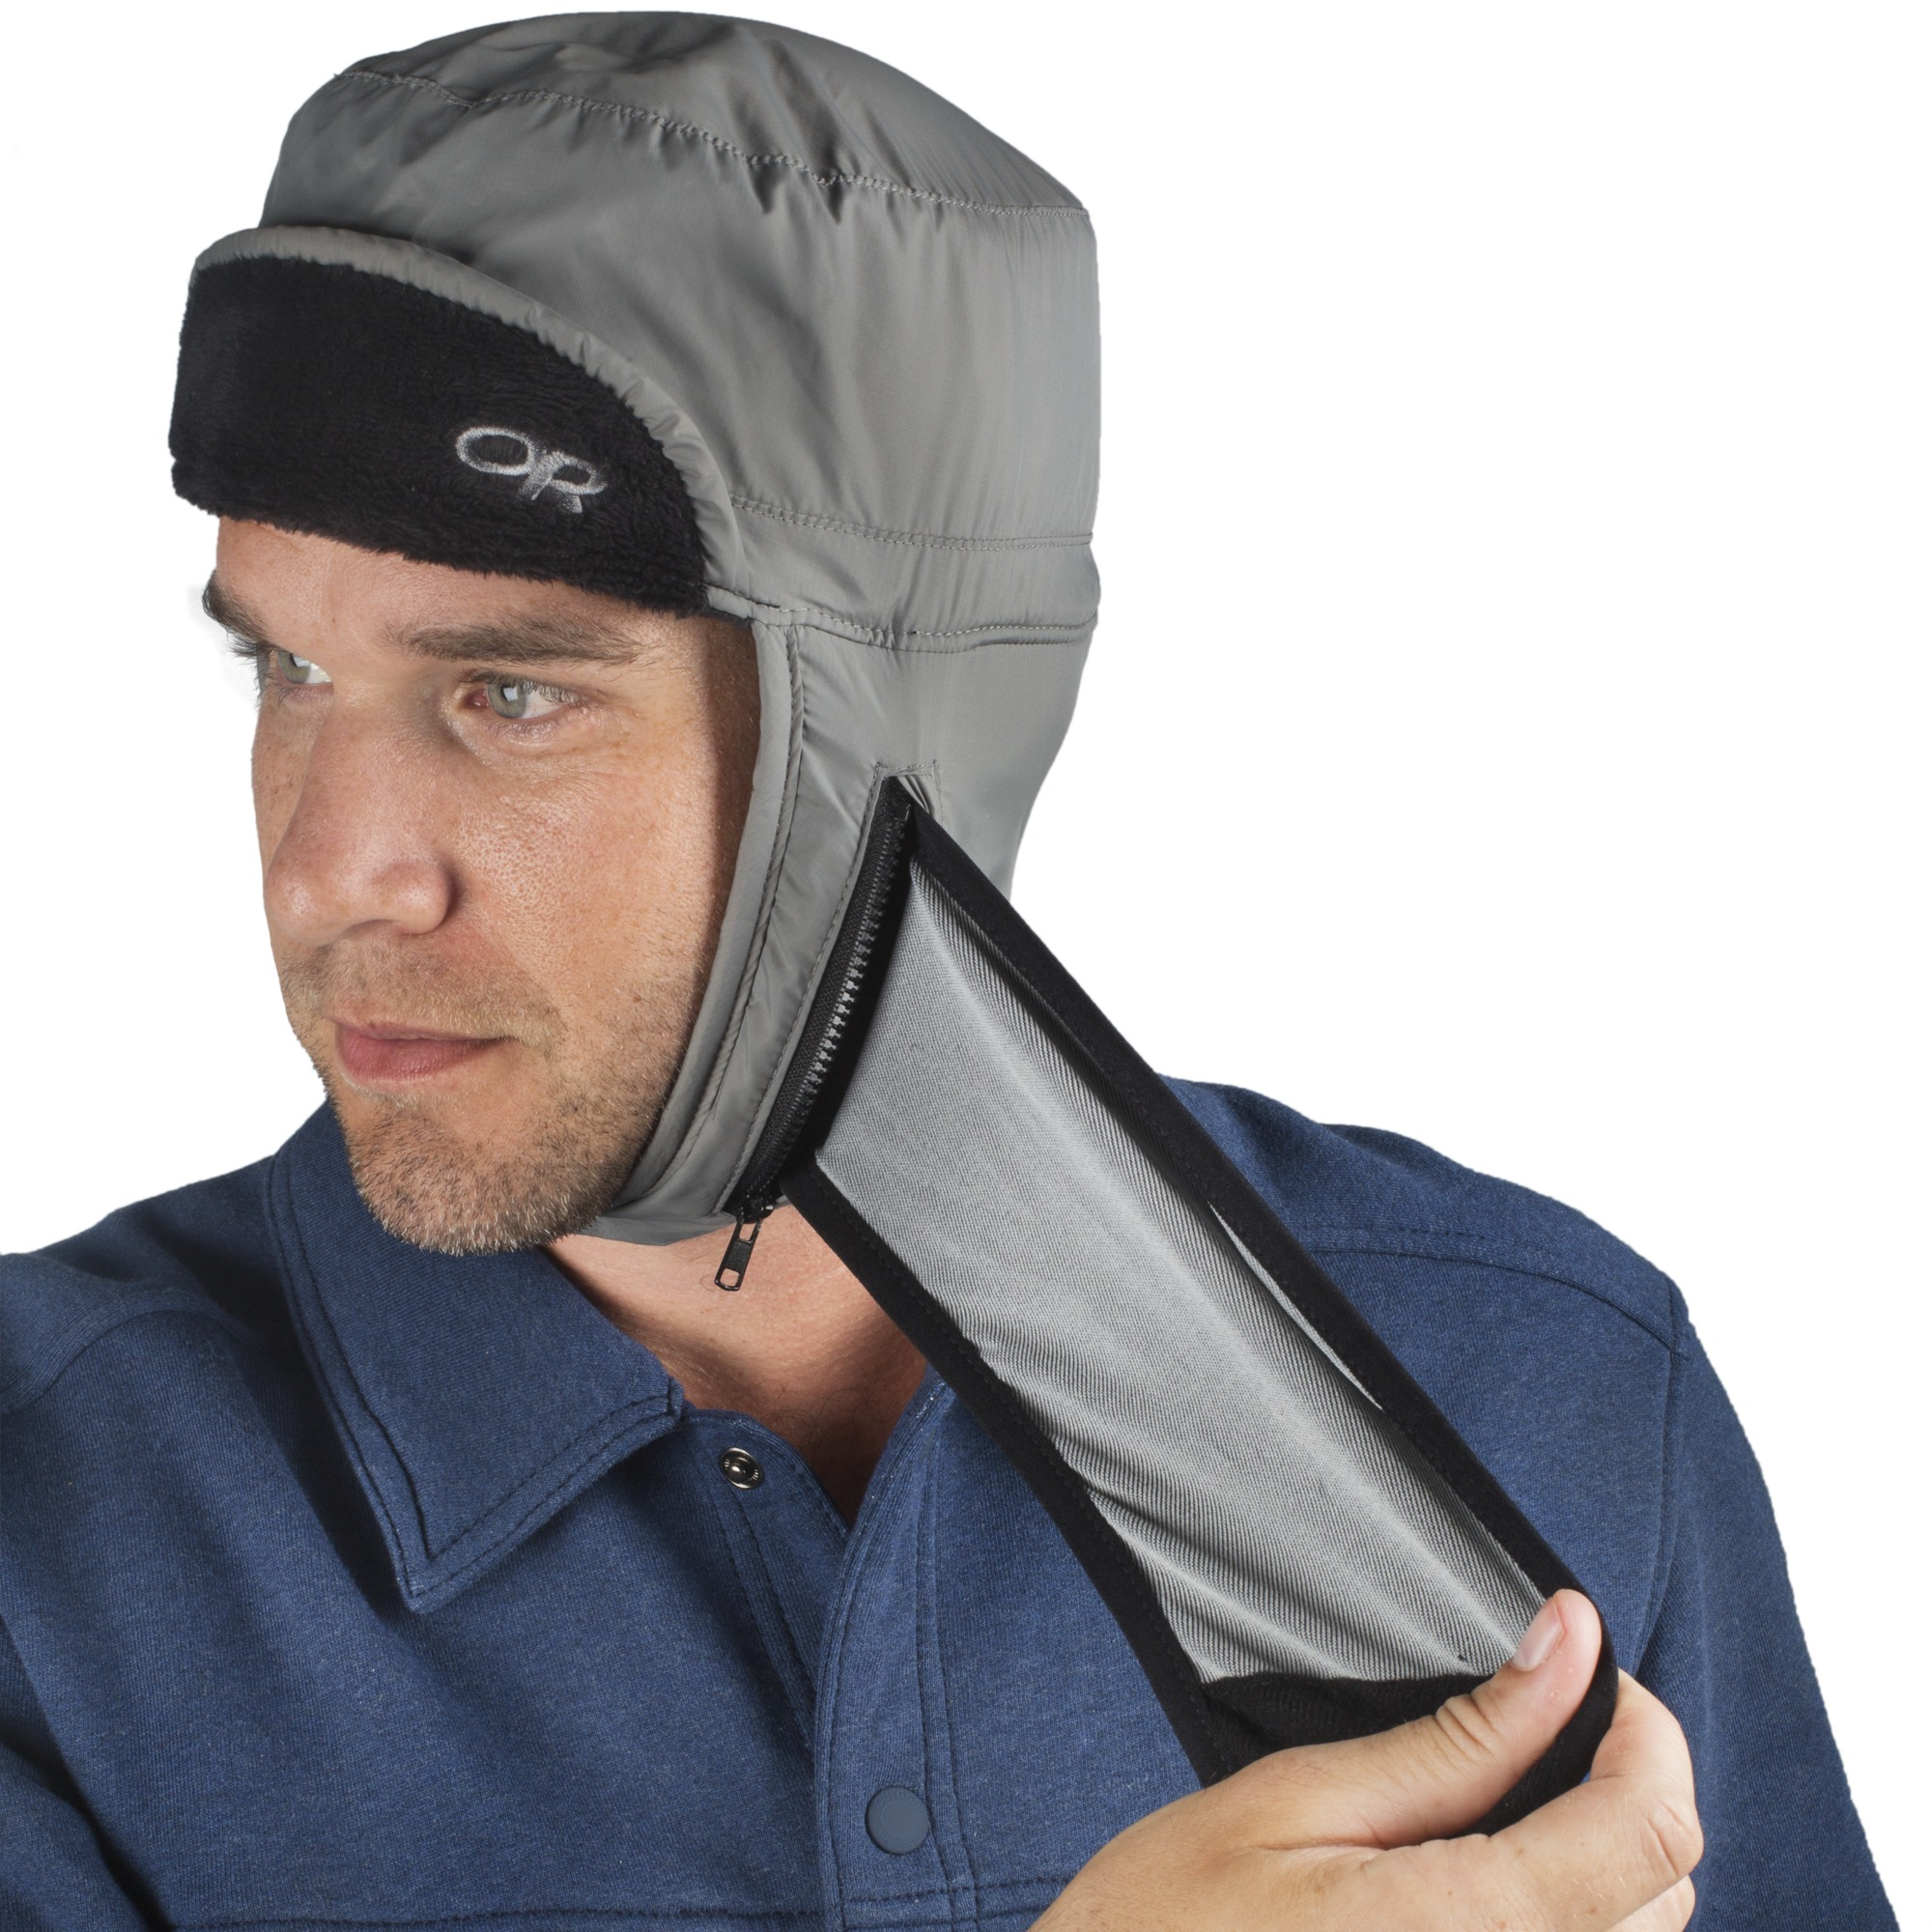 aa449b3ad84be9 Frostline Hat™ - evergreen   Outdoor Research